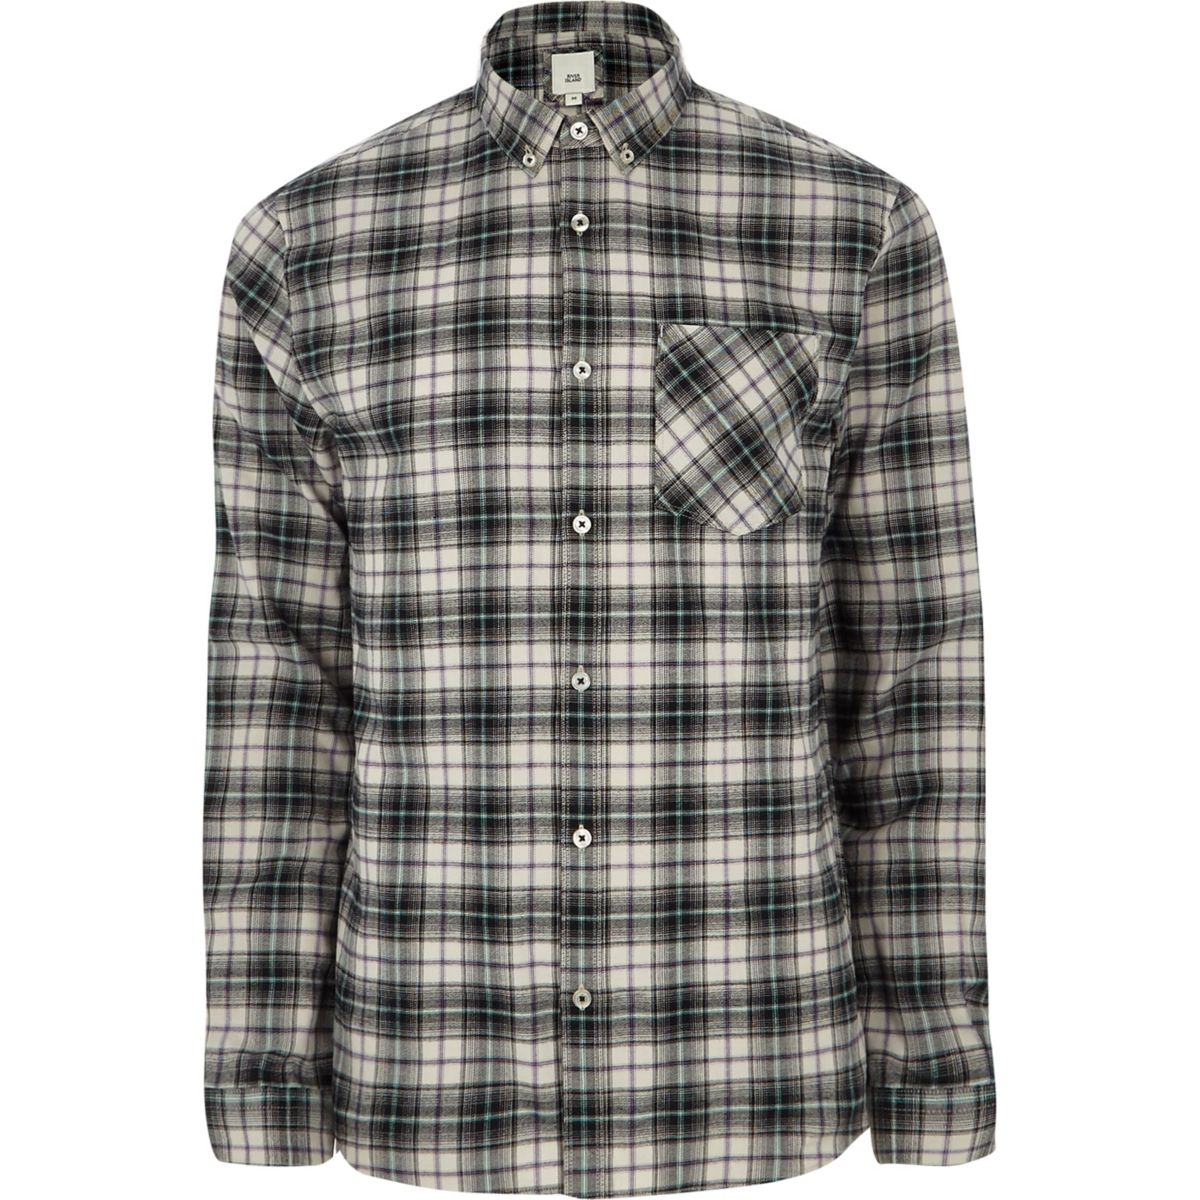 Grey check long sleeve button down shirt long sleeve for Grey button down shirt